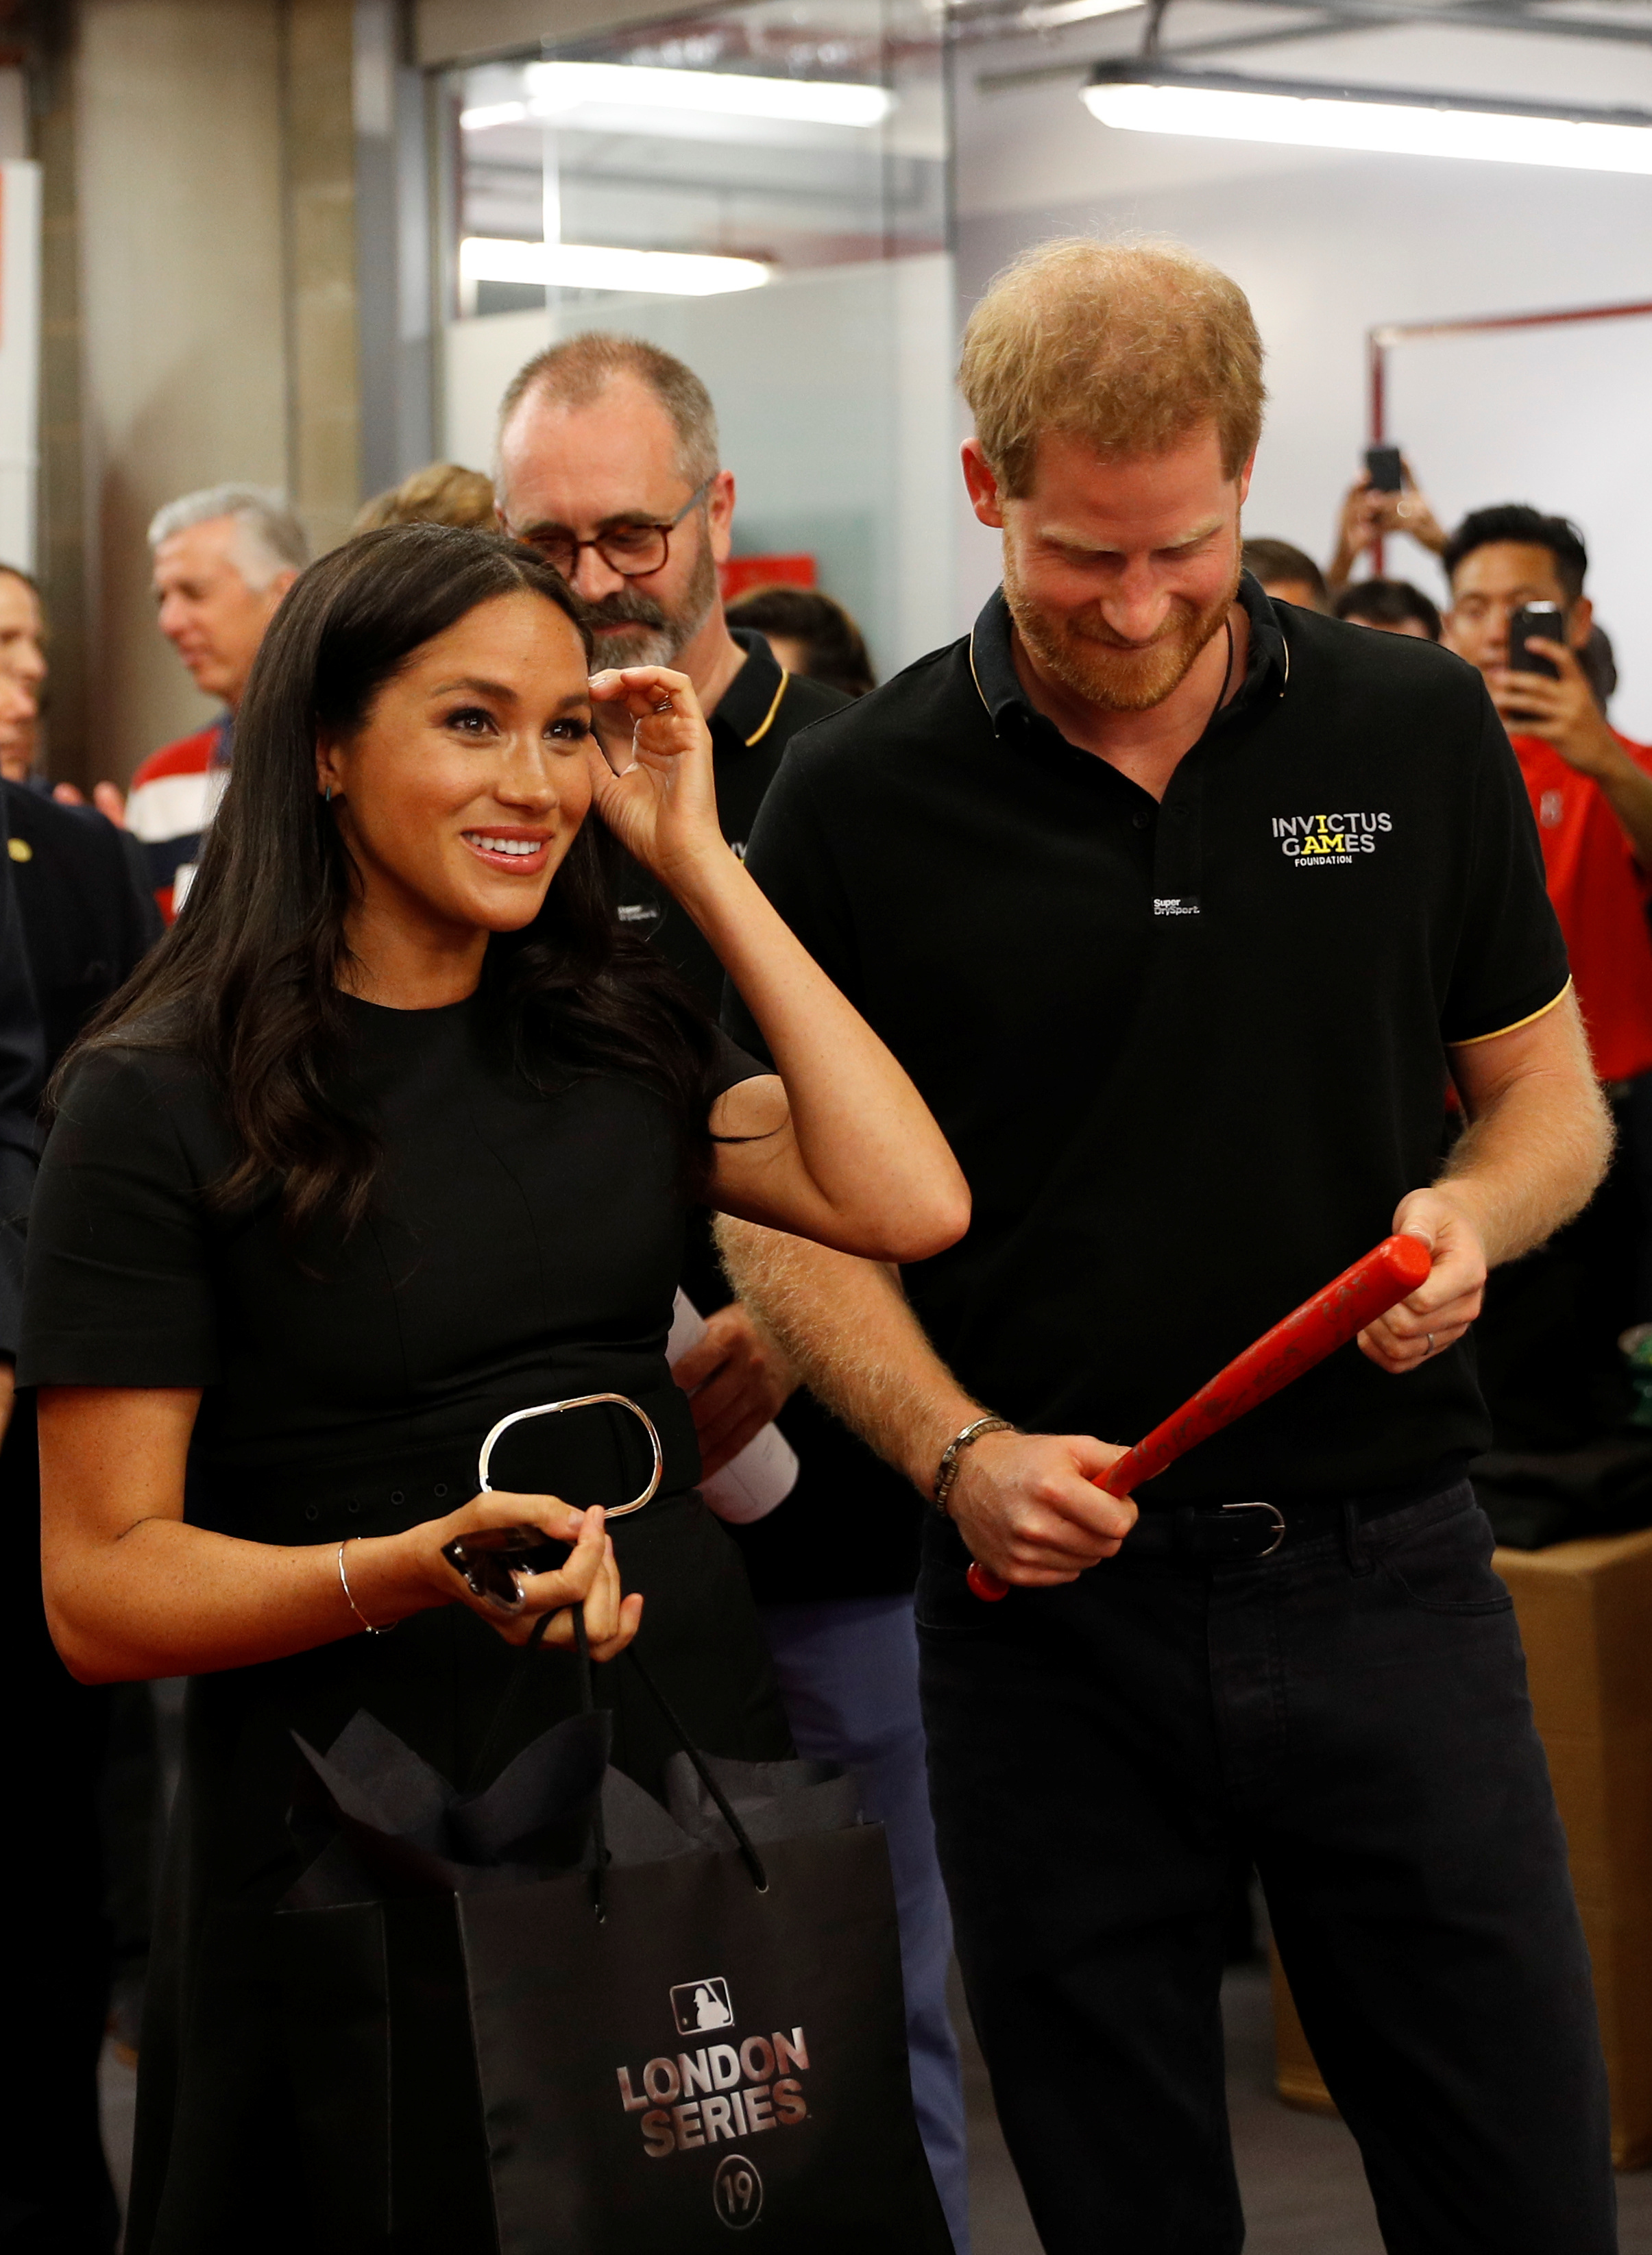 The Duke and Duchess of Sussex receive presents for their son Archie as they meet players of the Boston Red Sox as they attend the Boston Red Sox vs New York Yankees baseball game at the London Stadium in support of the Invictus Games Foundation.